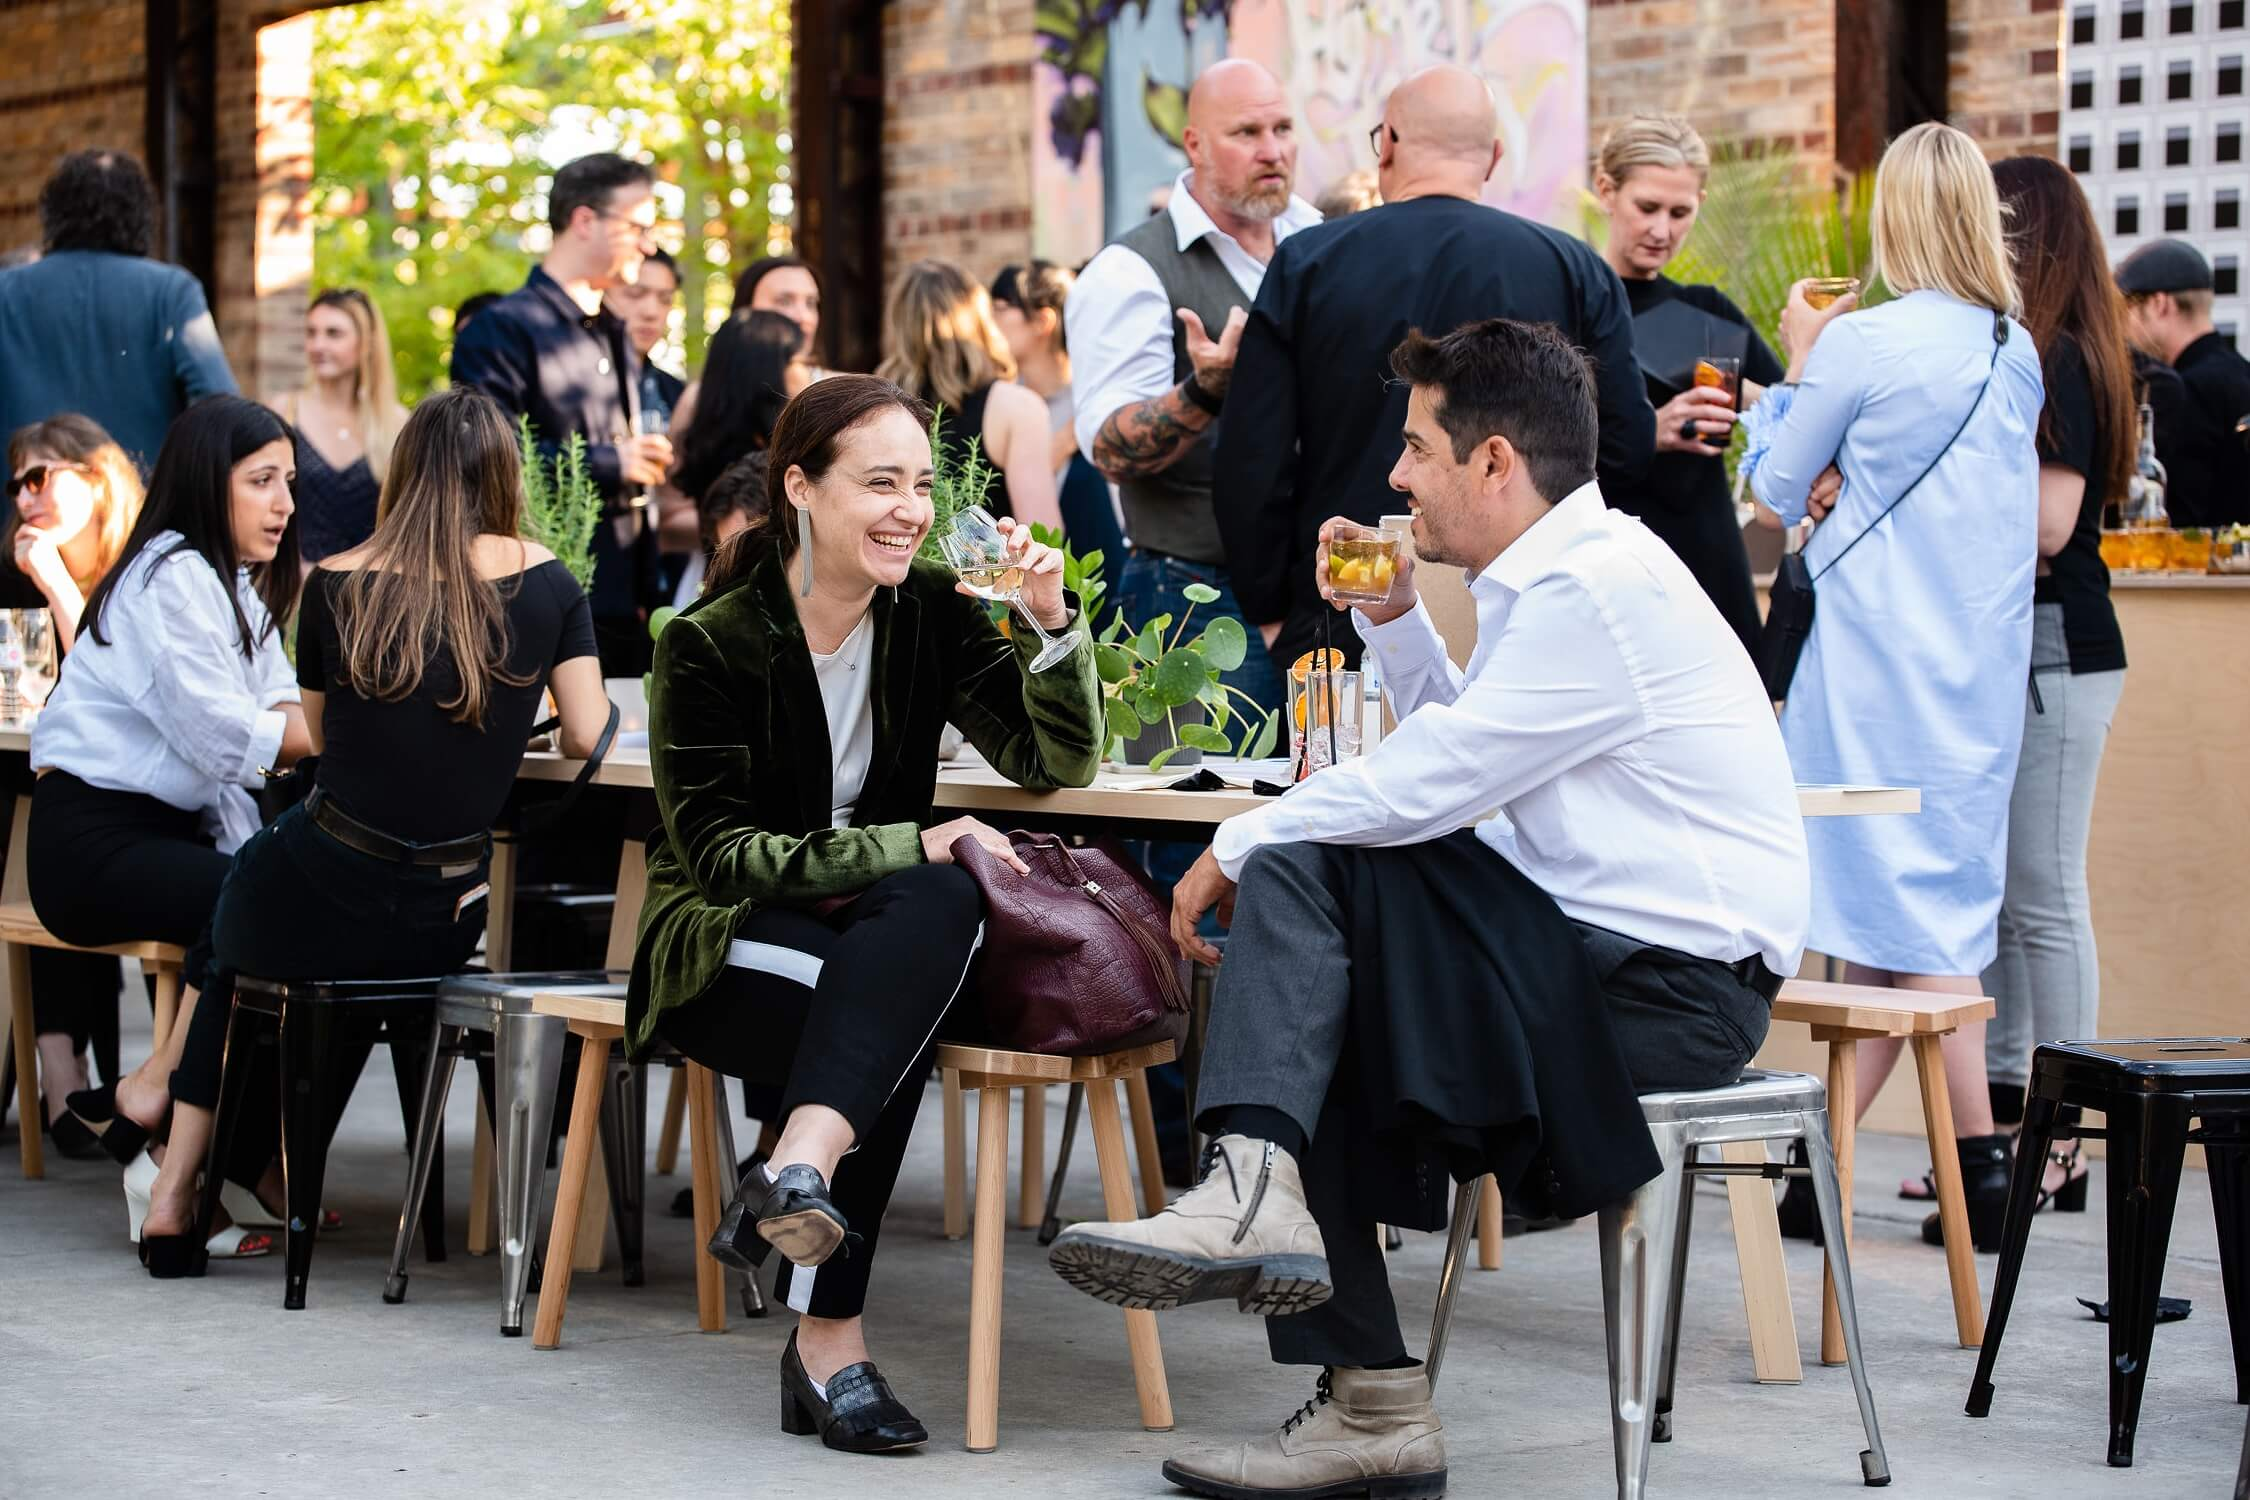 Mingling in the courtyard, AZ Awards 2019: Scenes from the Gala